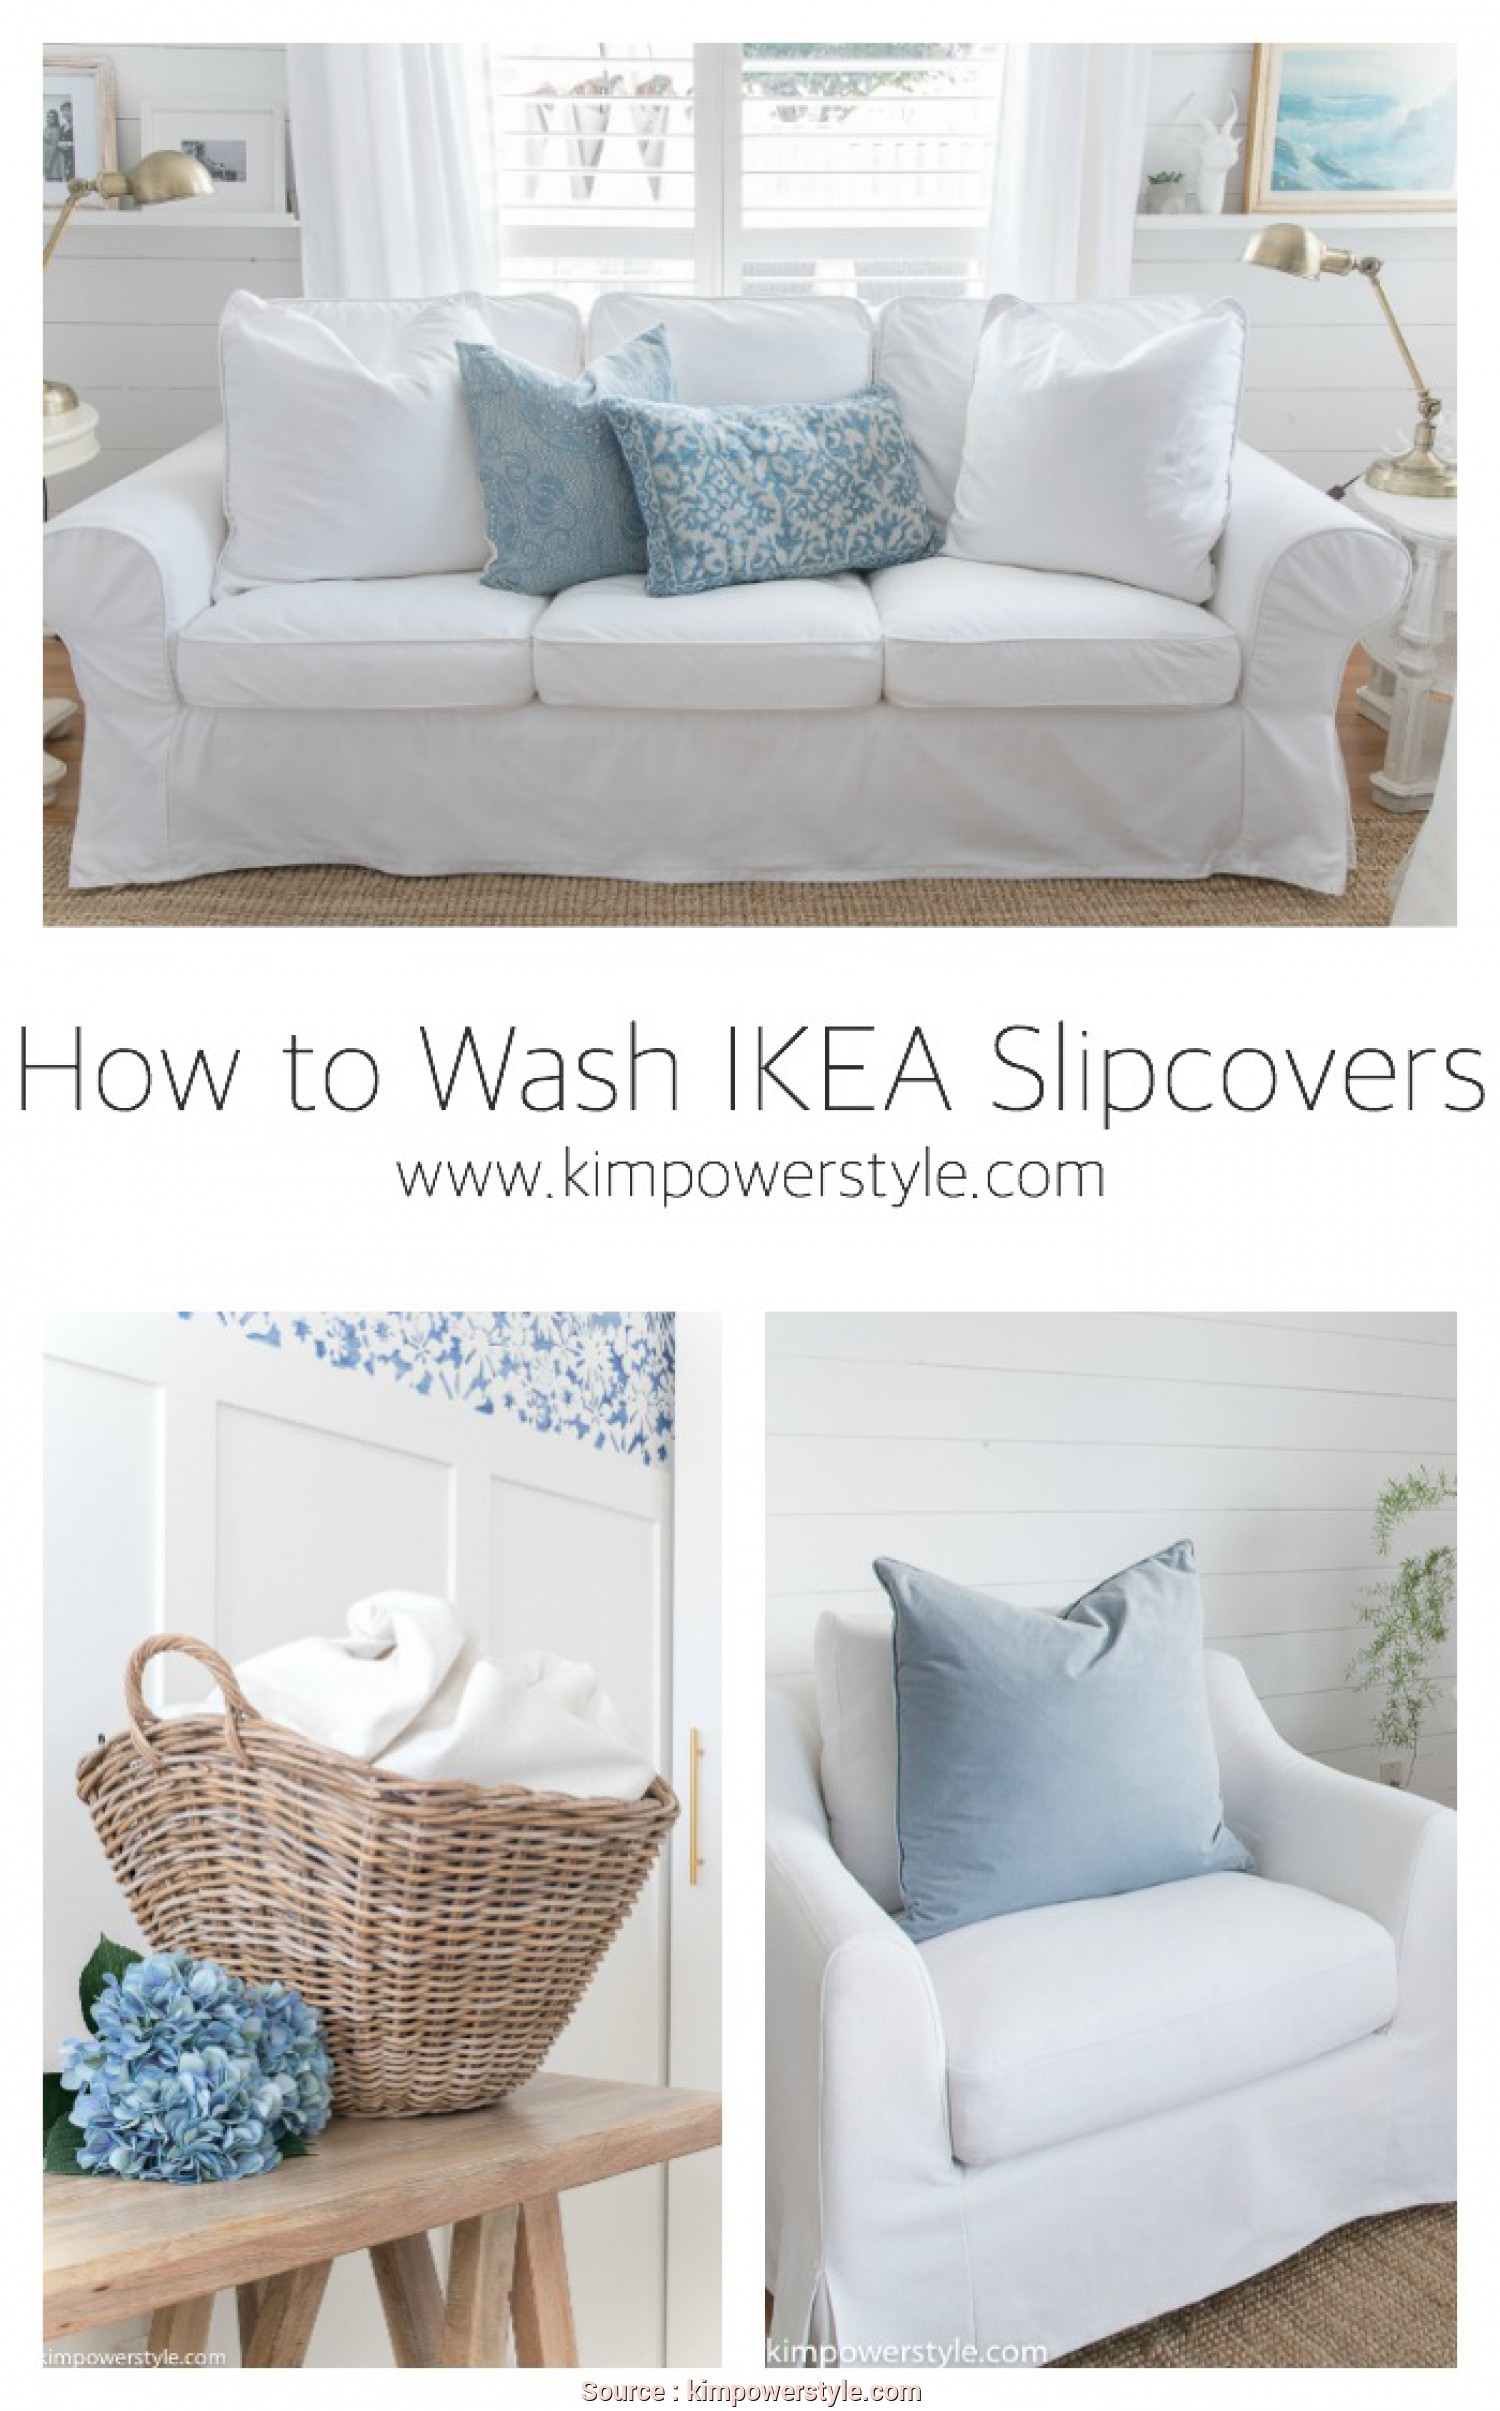 Can, Wash Ikea Futon Cover, Fantasia How To Wash Ikea Slipcovers